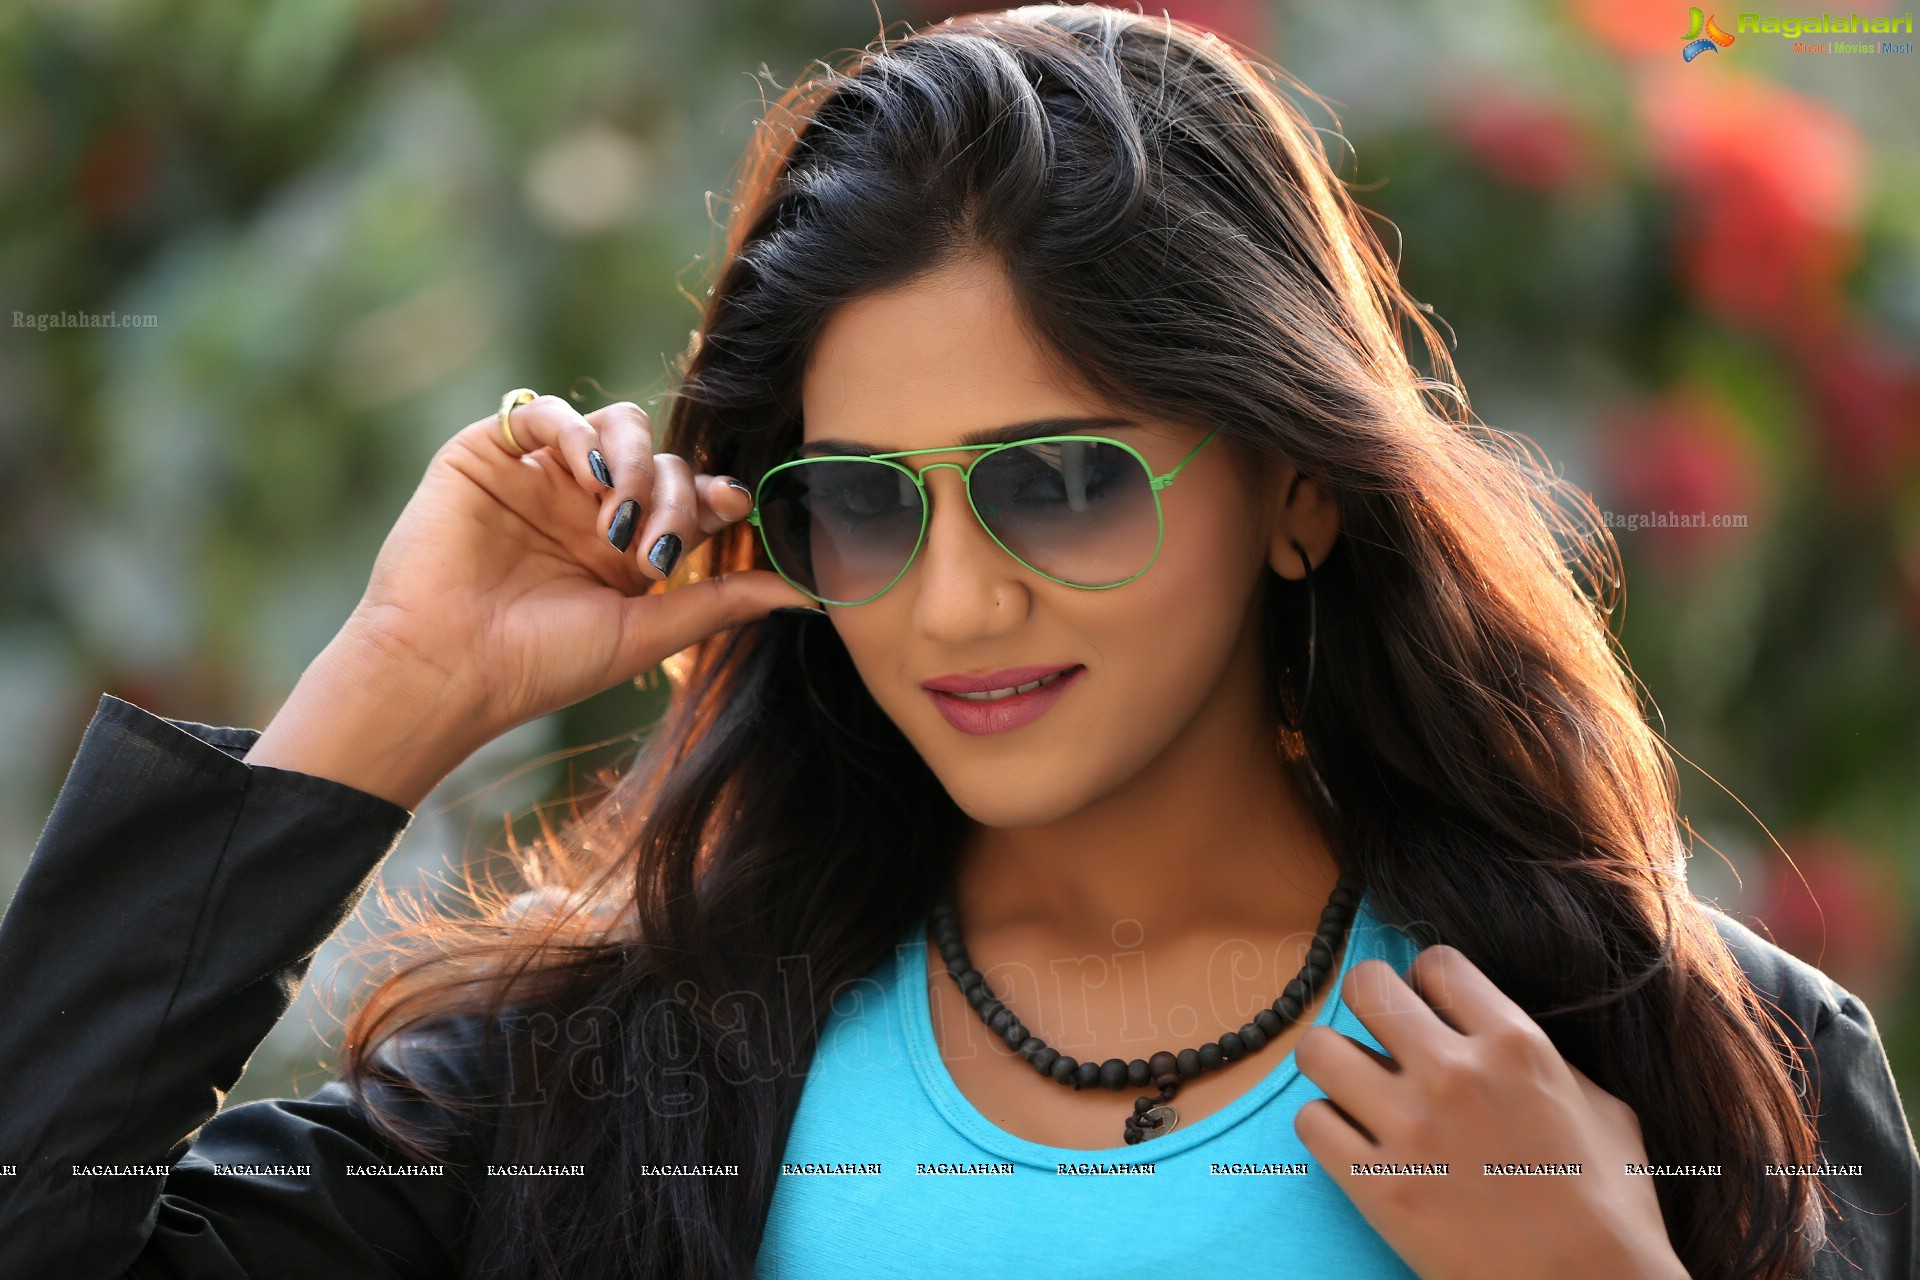 Shalu Chourasiya (Exclusive) (High Definition)